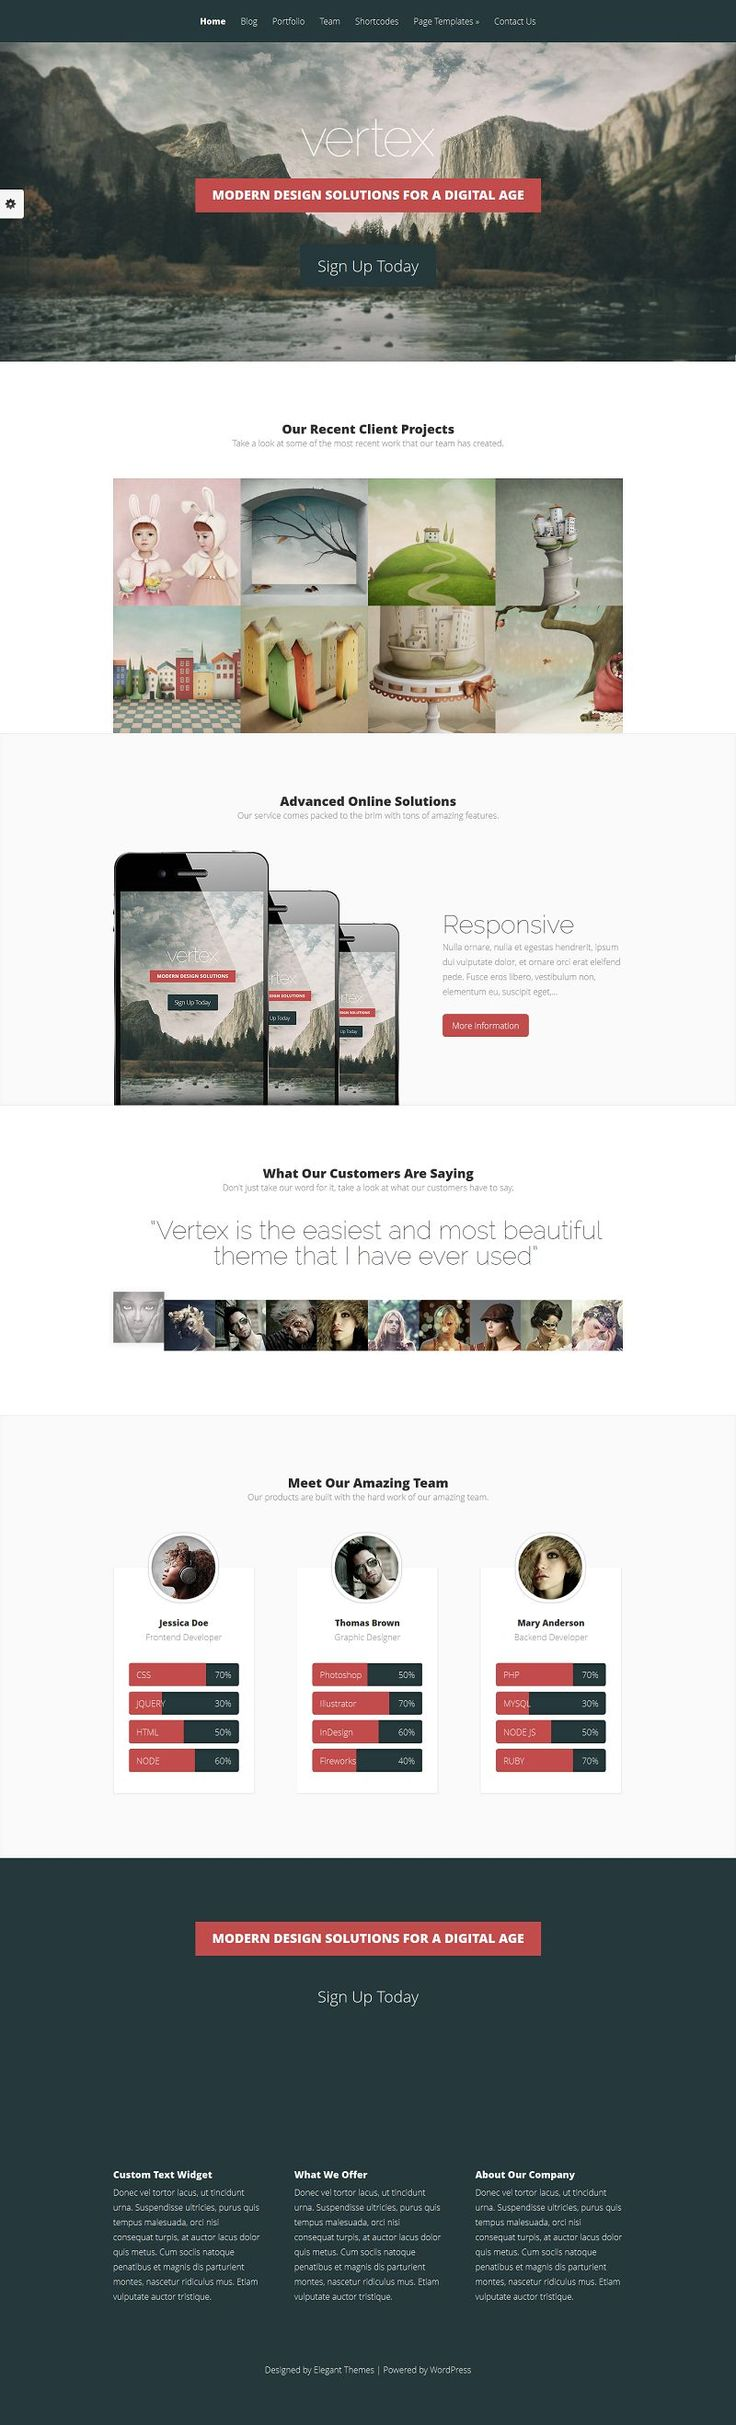 Vertex is a stunning theme built for service providers that want to showcase their equally stunning products.